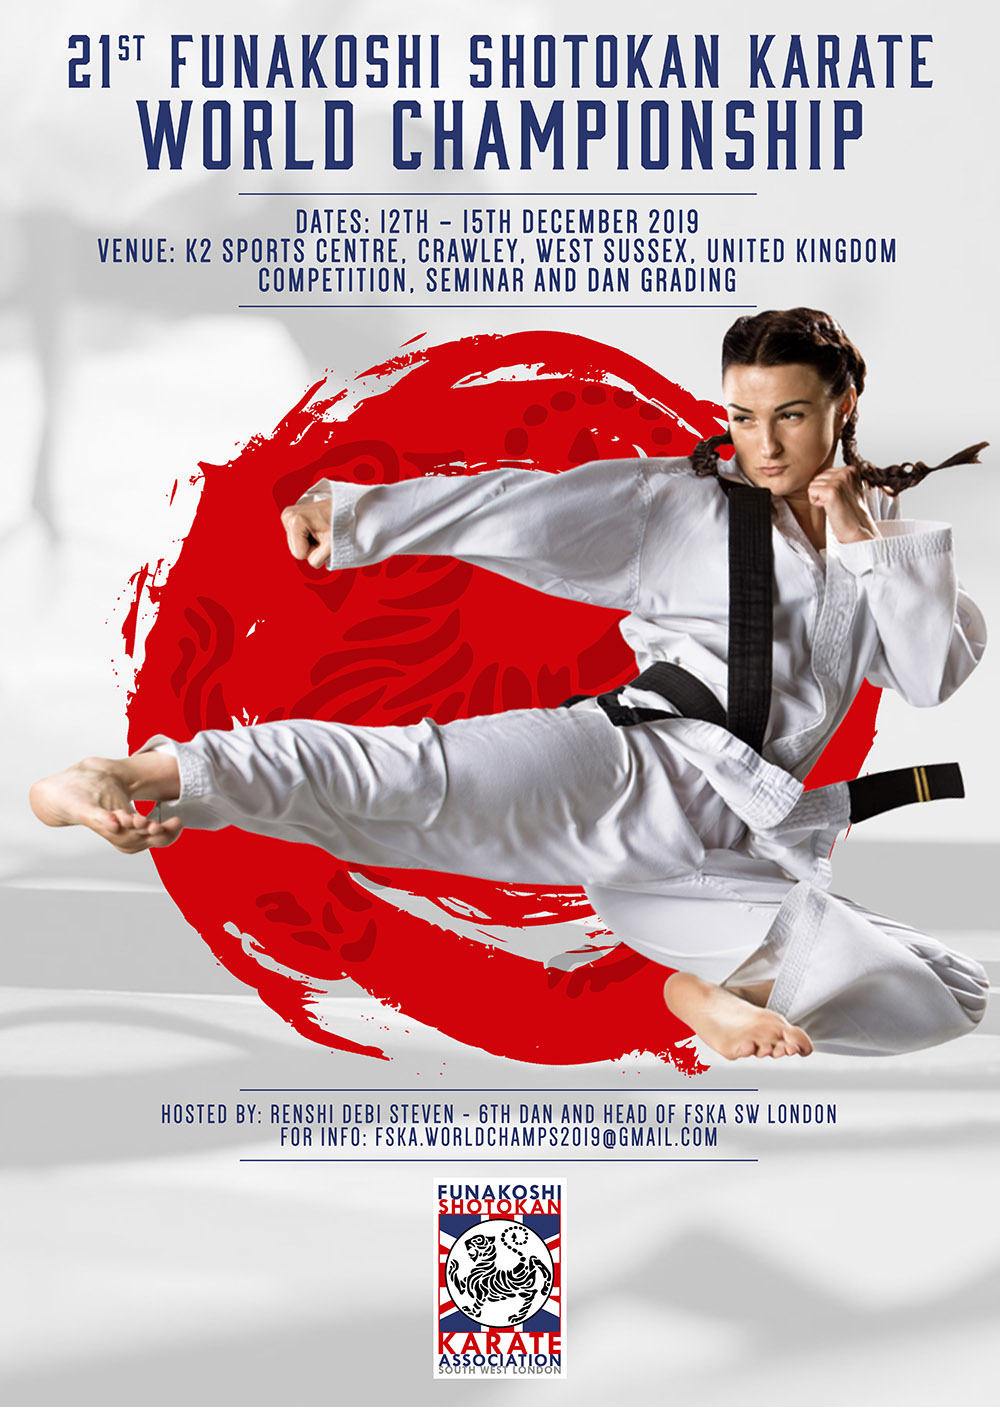 21st Funakoshi Shotokan Karate World Championship